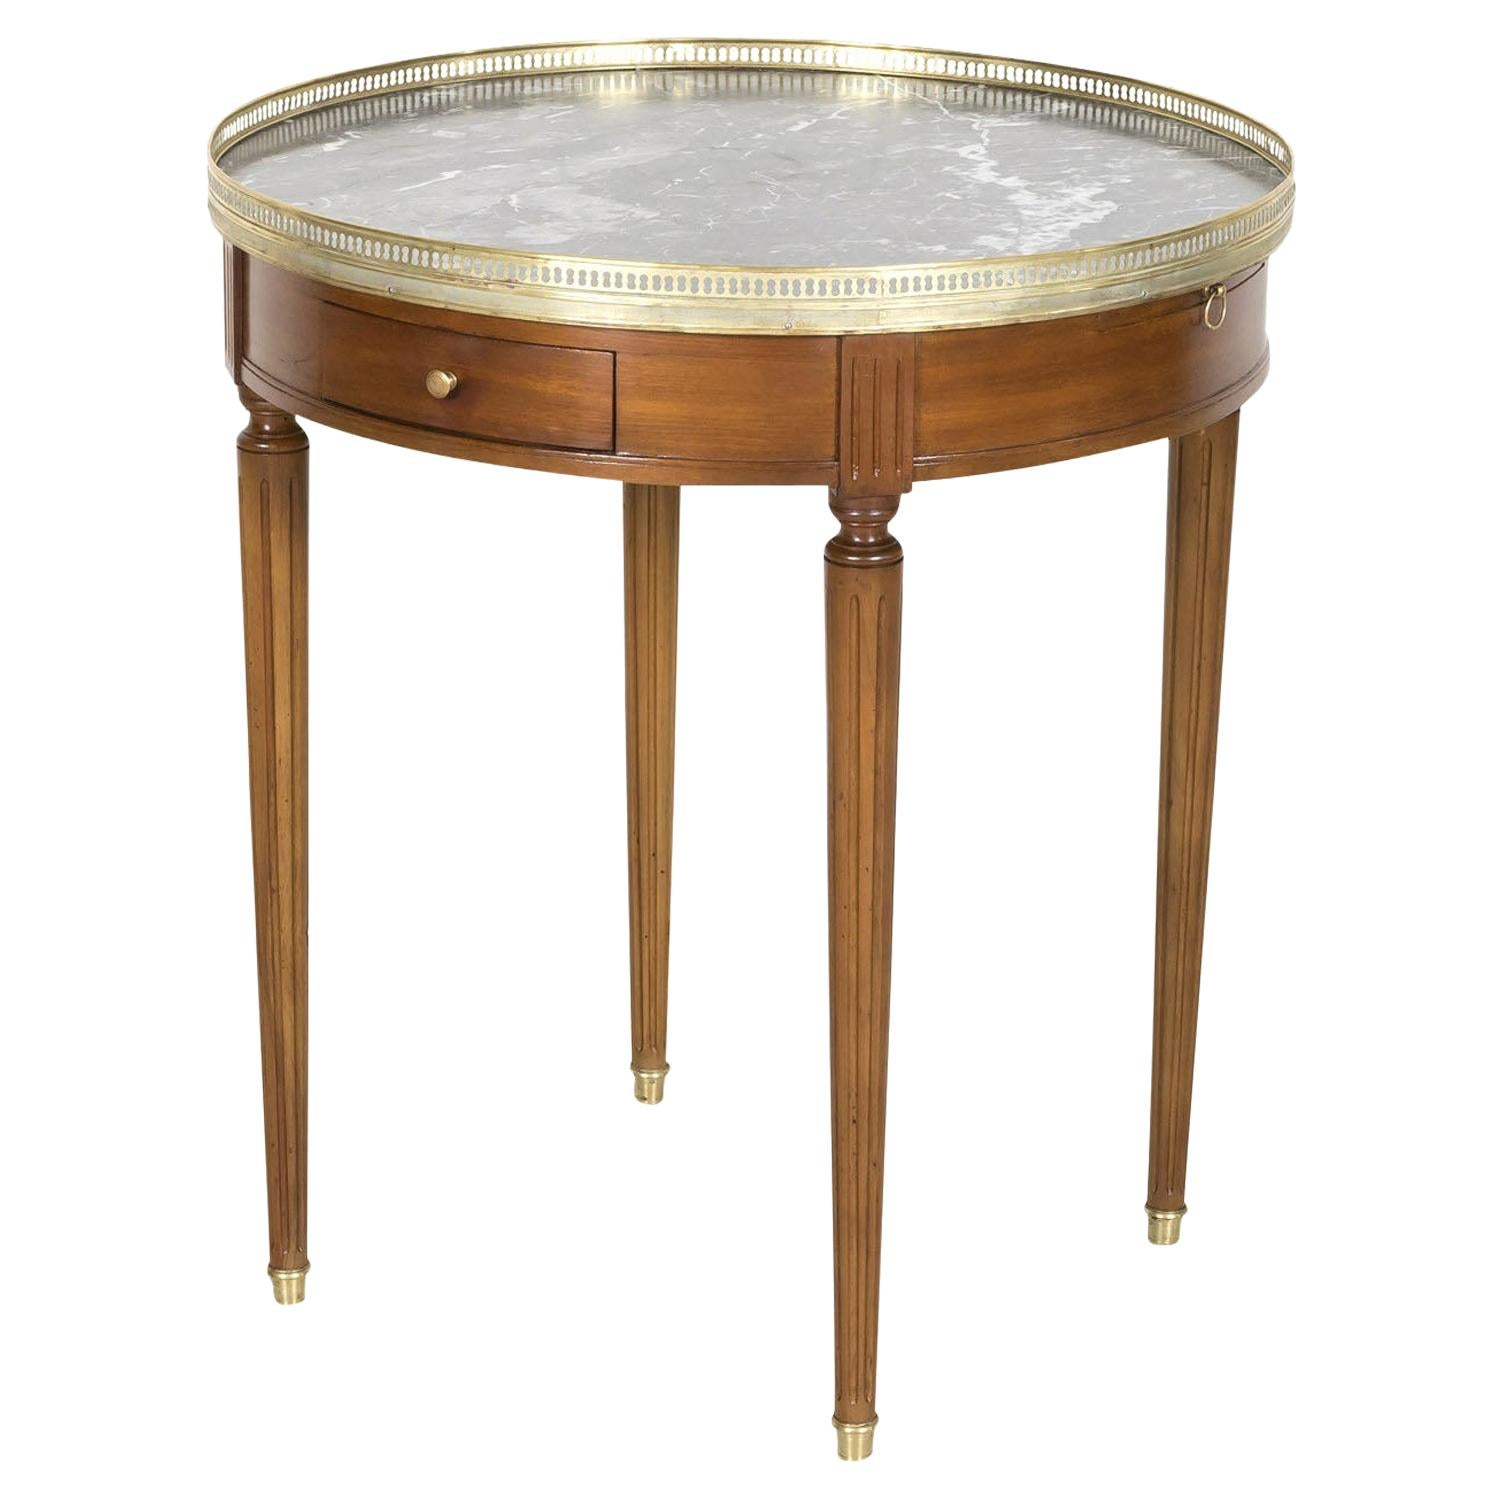 Early 20th Century French Louis XVI Style Mahogany Bouillotte Side Table